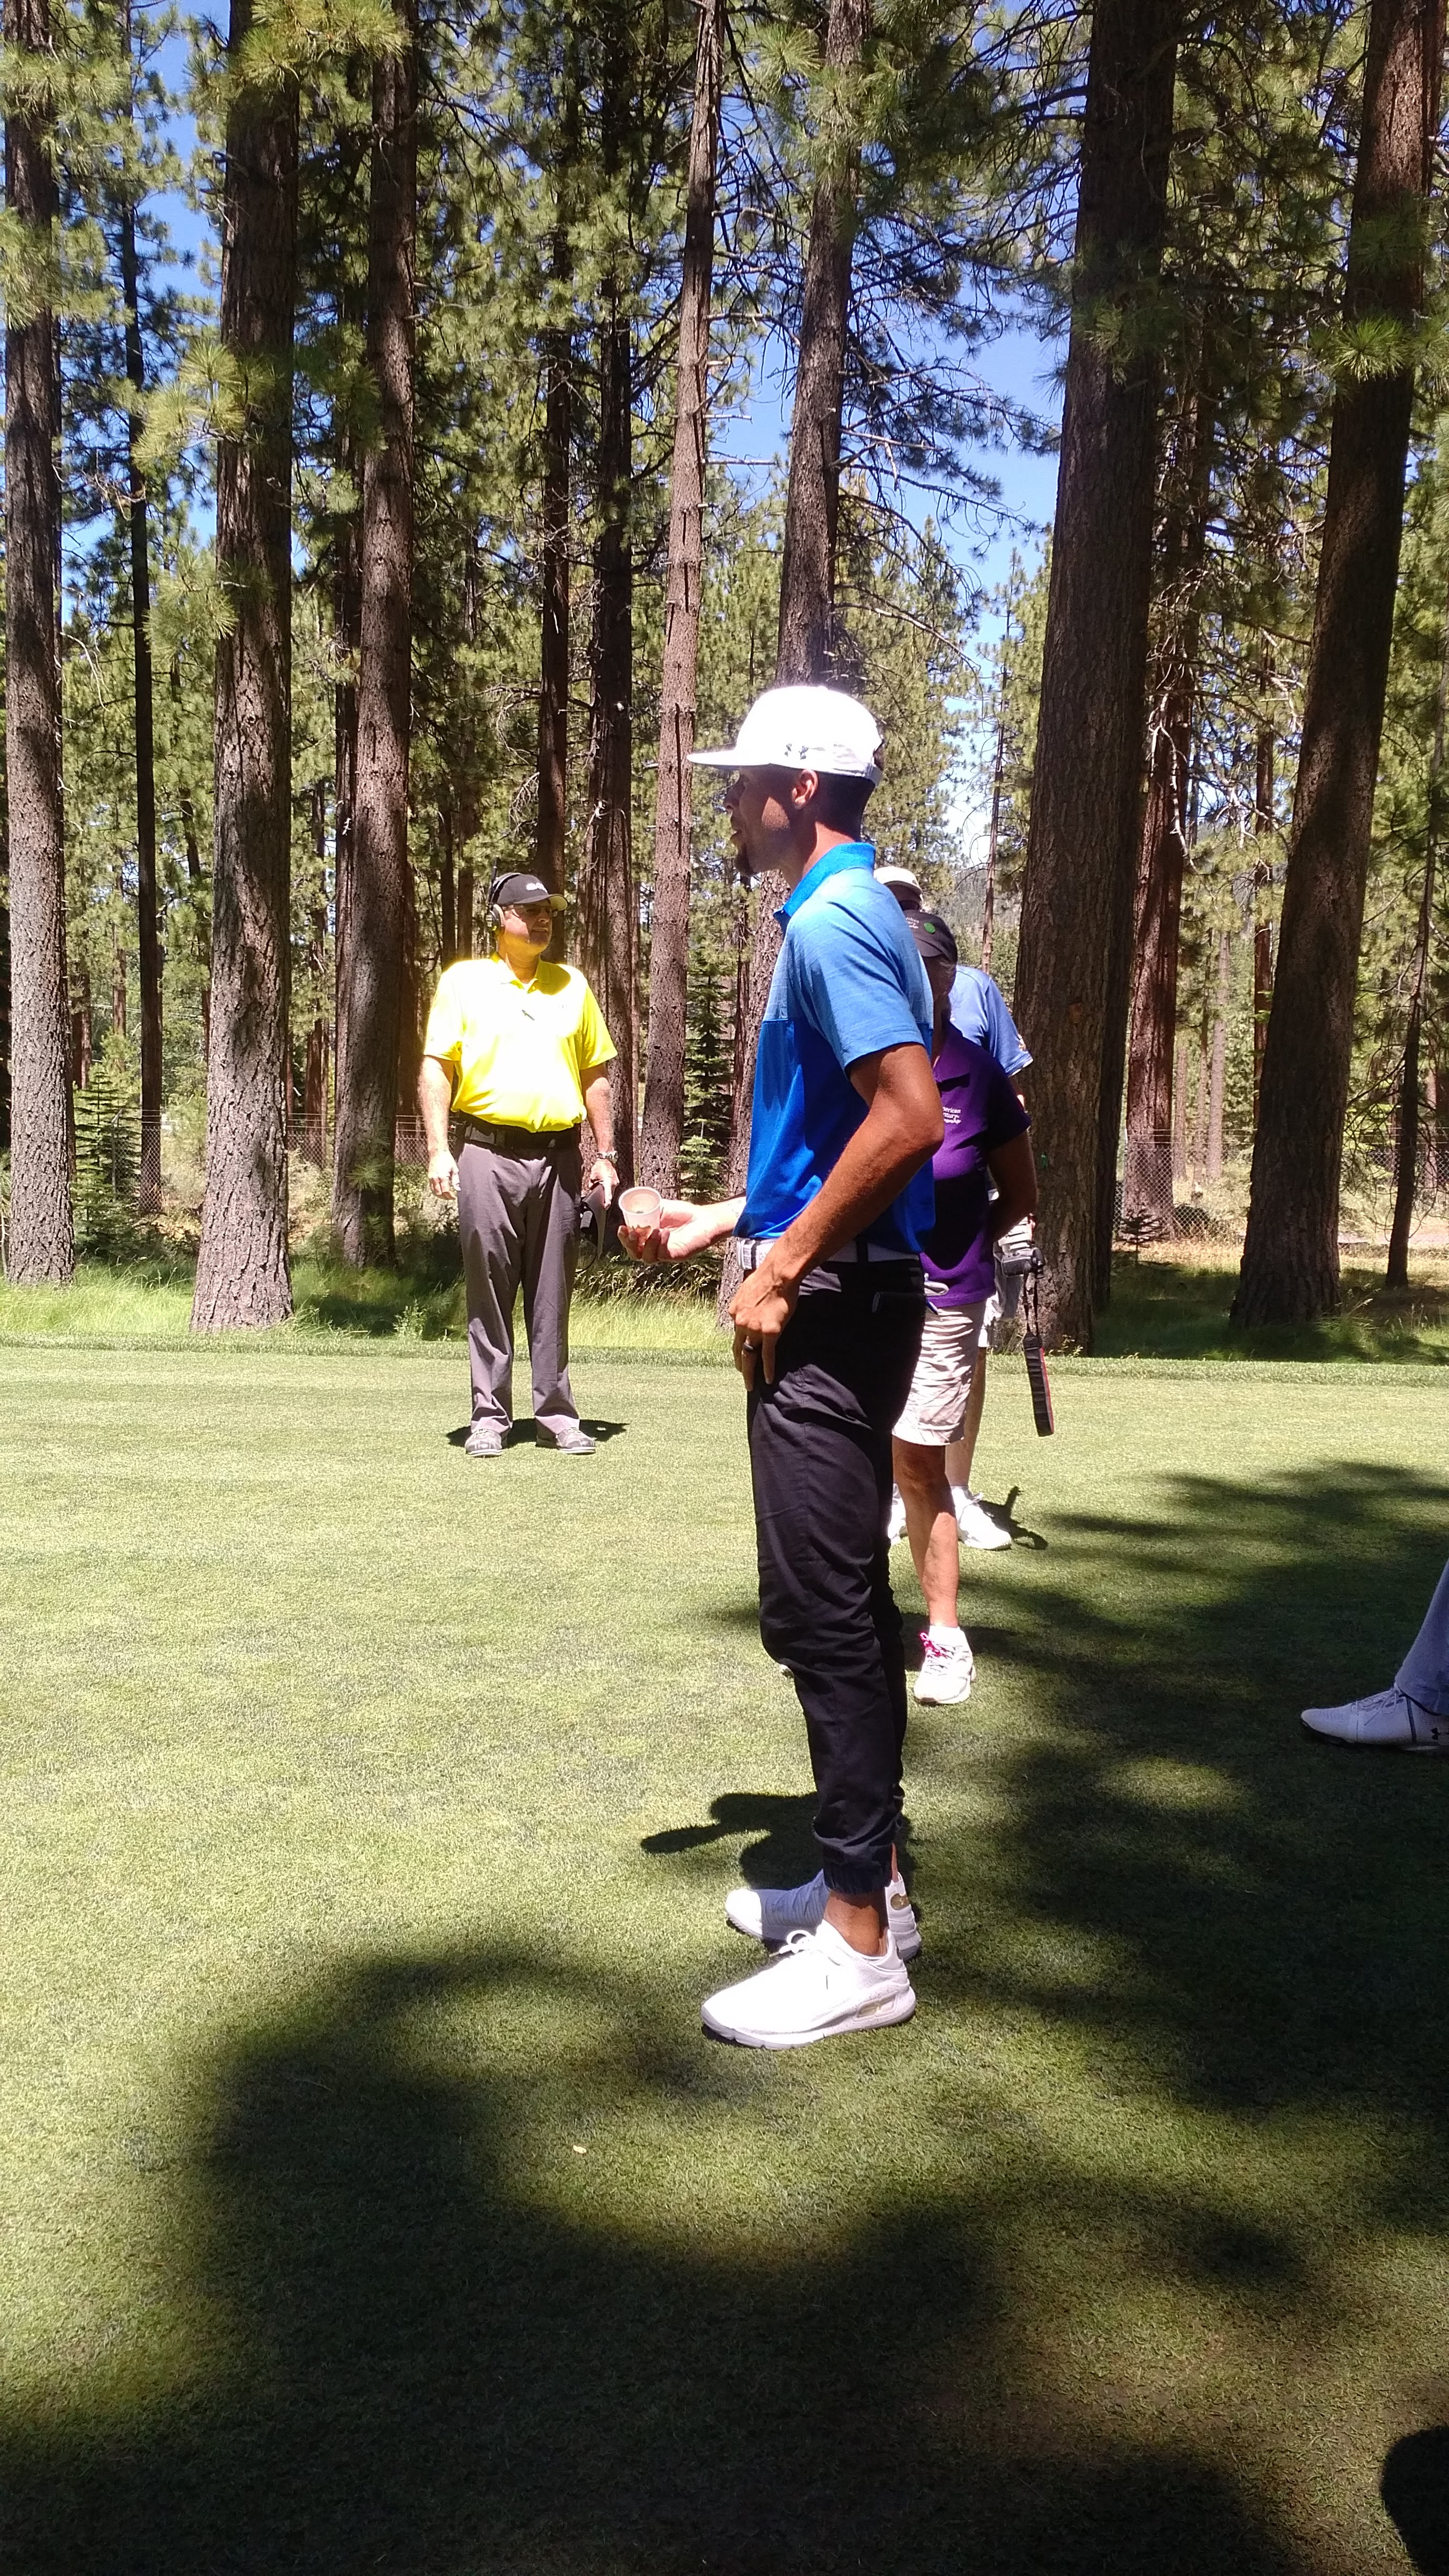 PHOTO GALLERY: Stephen Curry at the American Century Championship Golf Tournament in Lake Tahoe